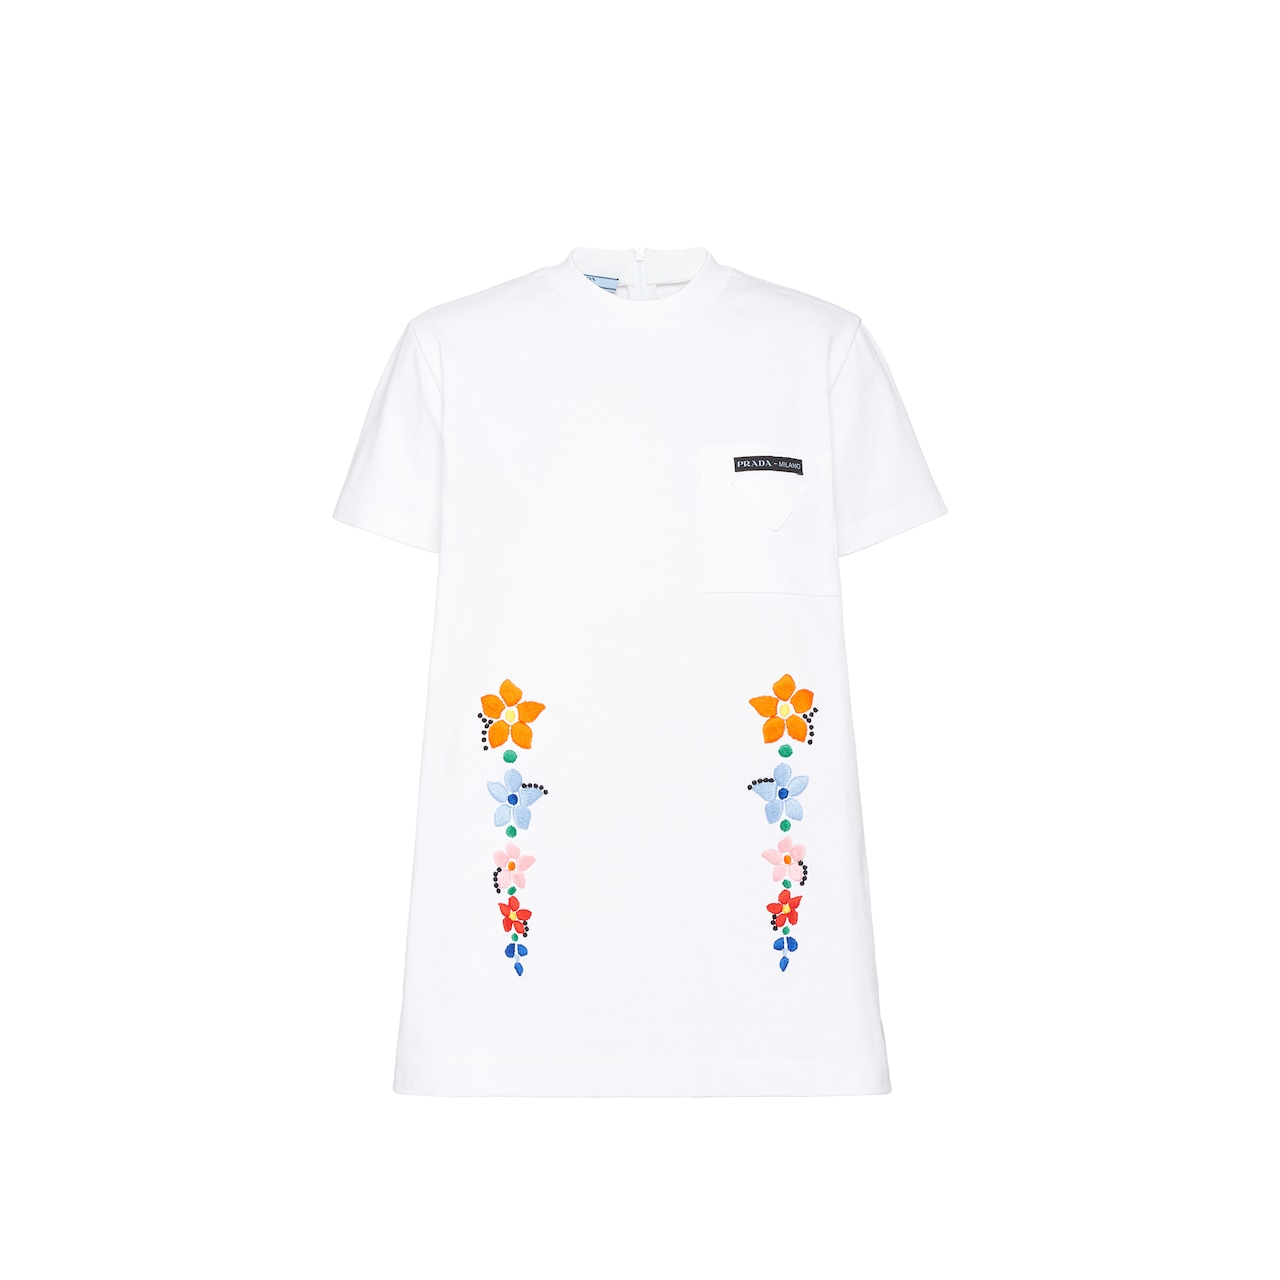 Prada Cotton jersey T-shirt with embroidery 1